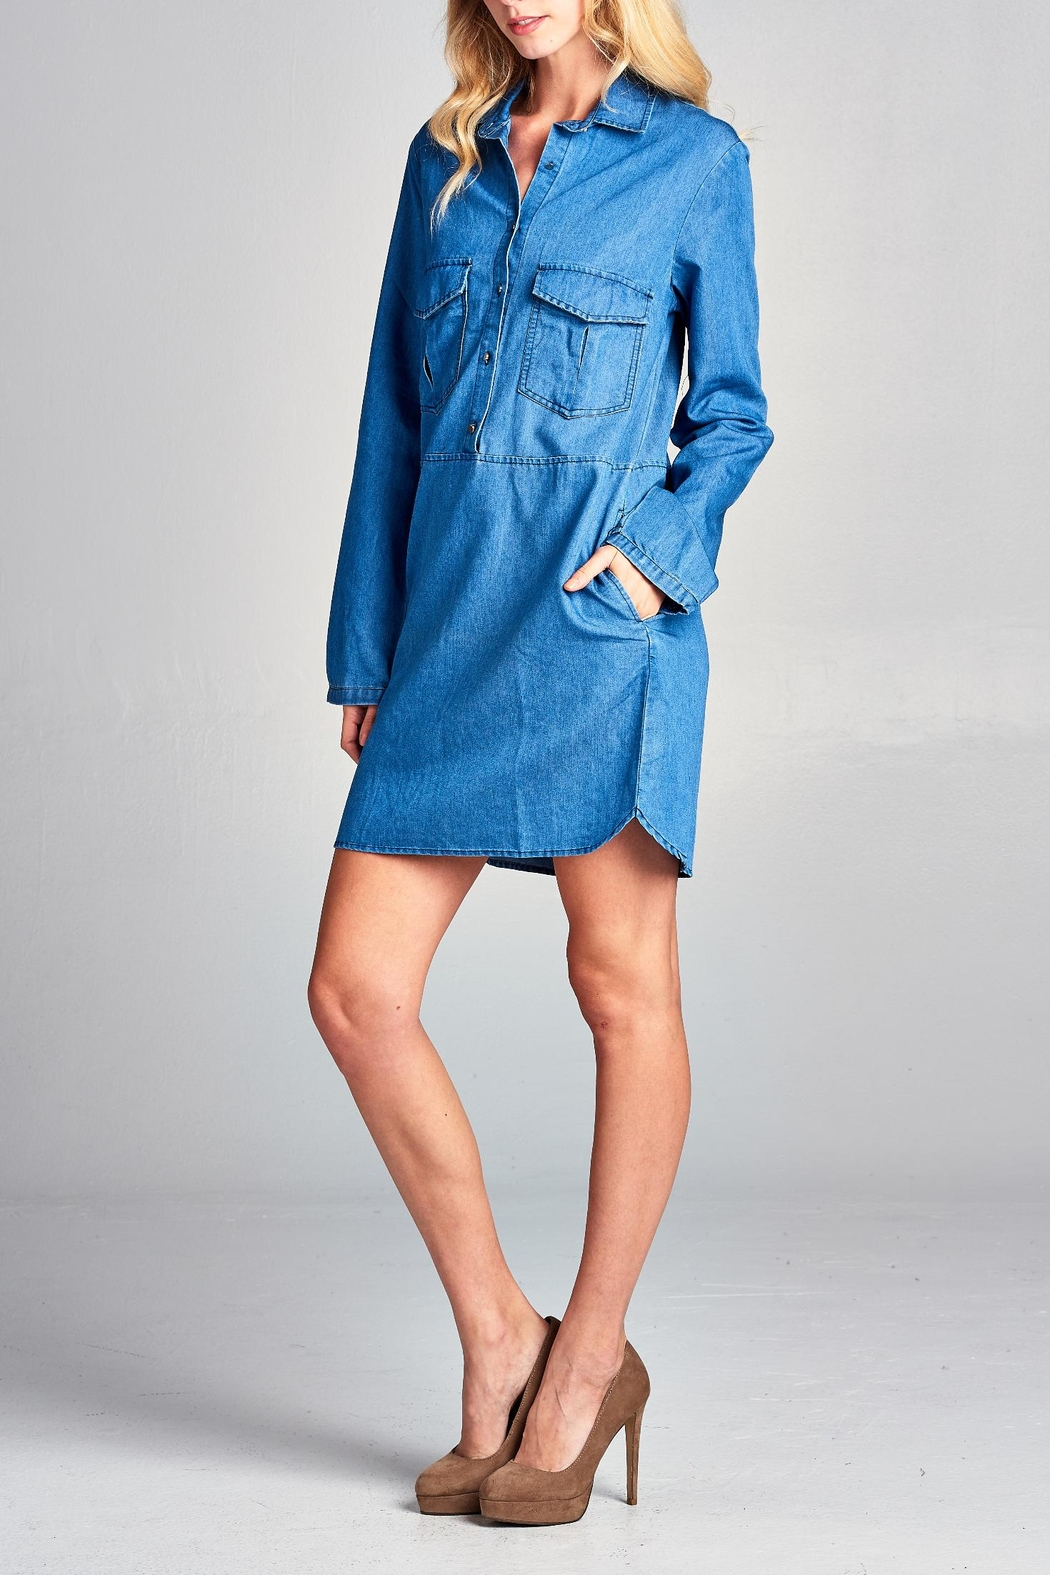 Racine Lightweight Denim Shirtdress - Front Full Image